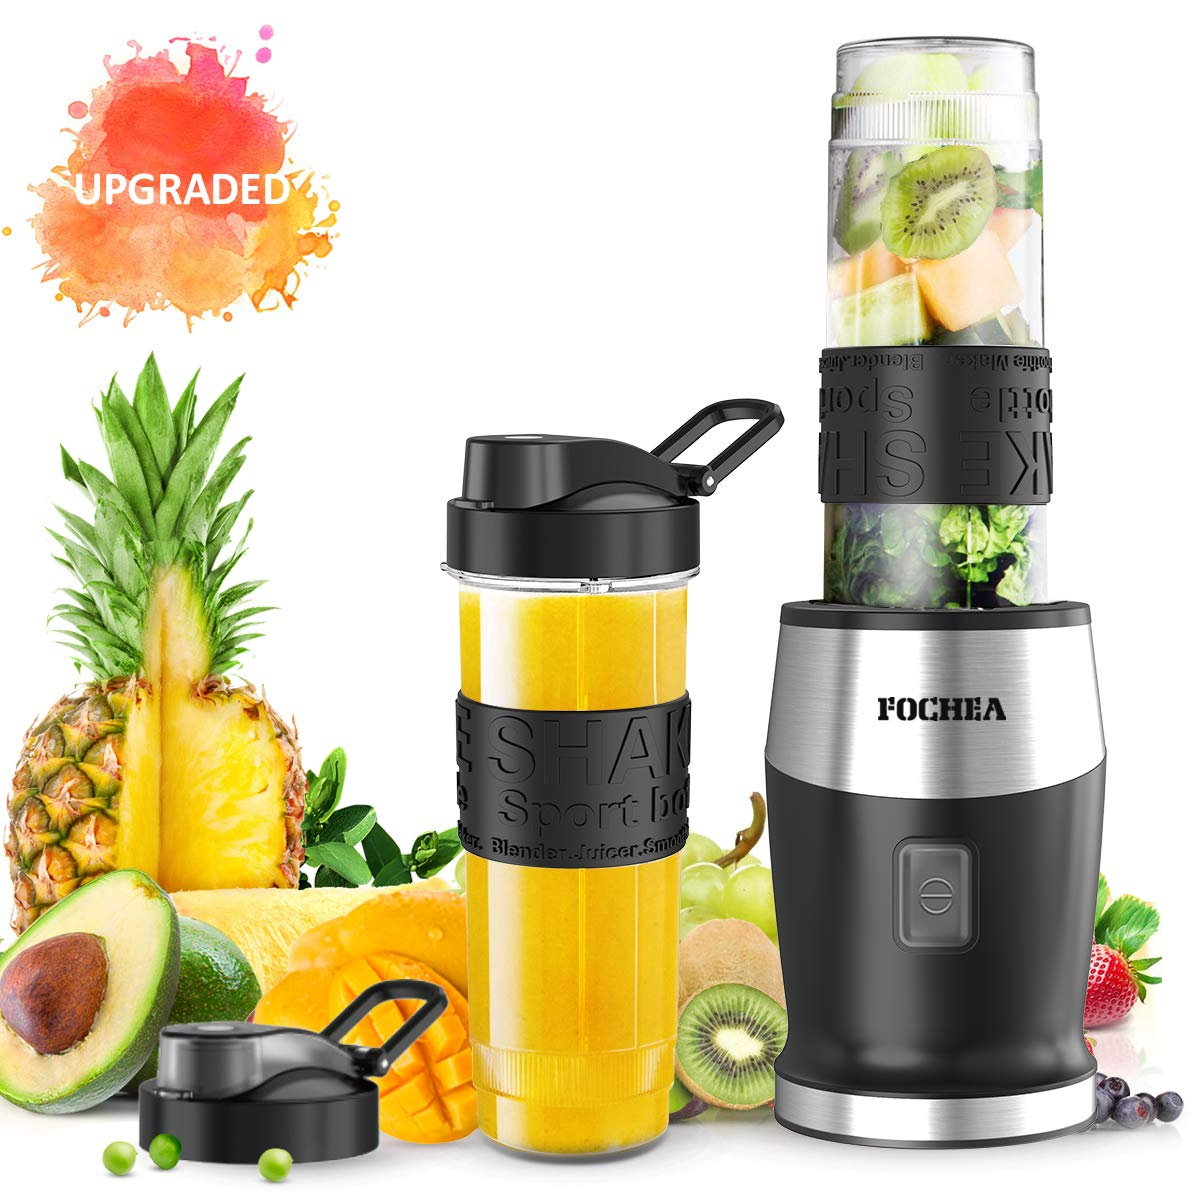 Smoothie Blender,Personal Blender Single Serve Small Blender for Juice shakes and Smoothies,with Two 570ml BPA-Free Portable Blender Bottles, 500W/24,000 RPM by FOCHEA